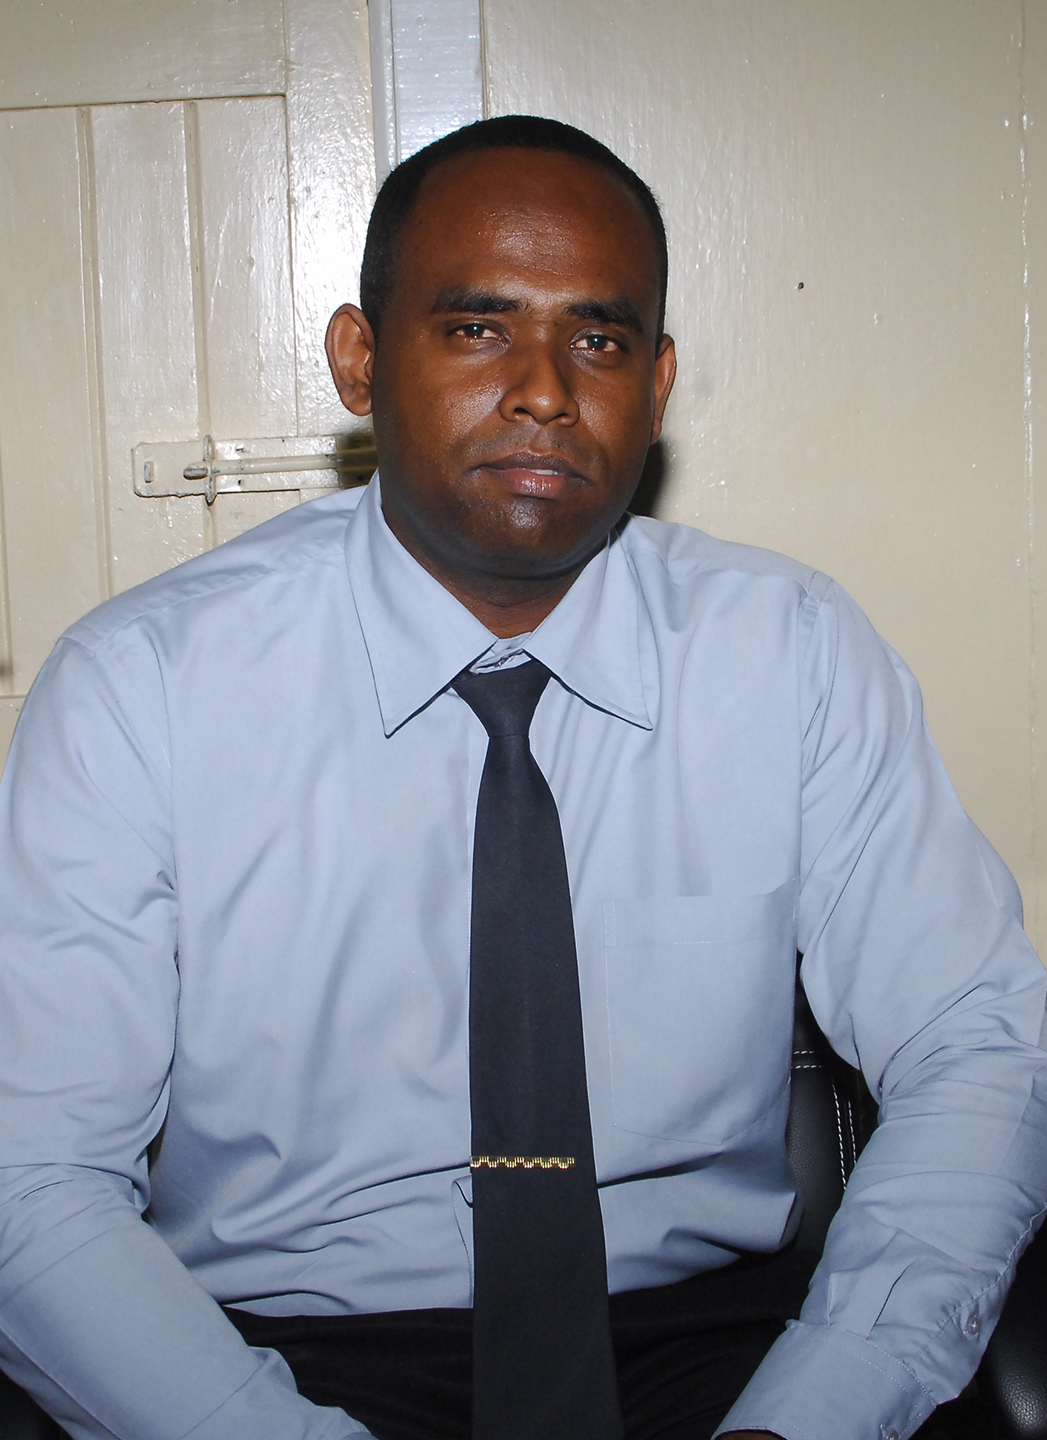 Blanhum back but not as Crime ChiefDivision - Guyana - Paul Williams - Stabroek News - This Morning